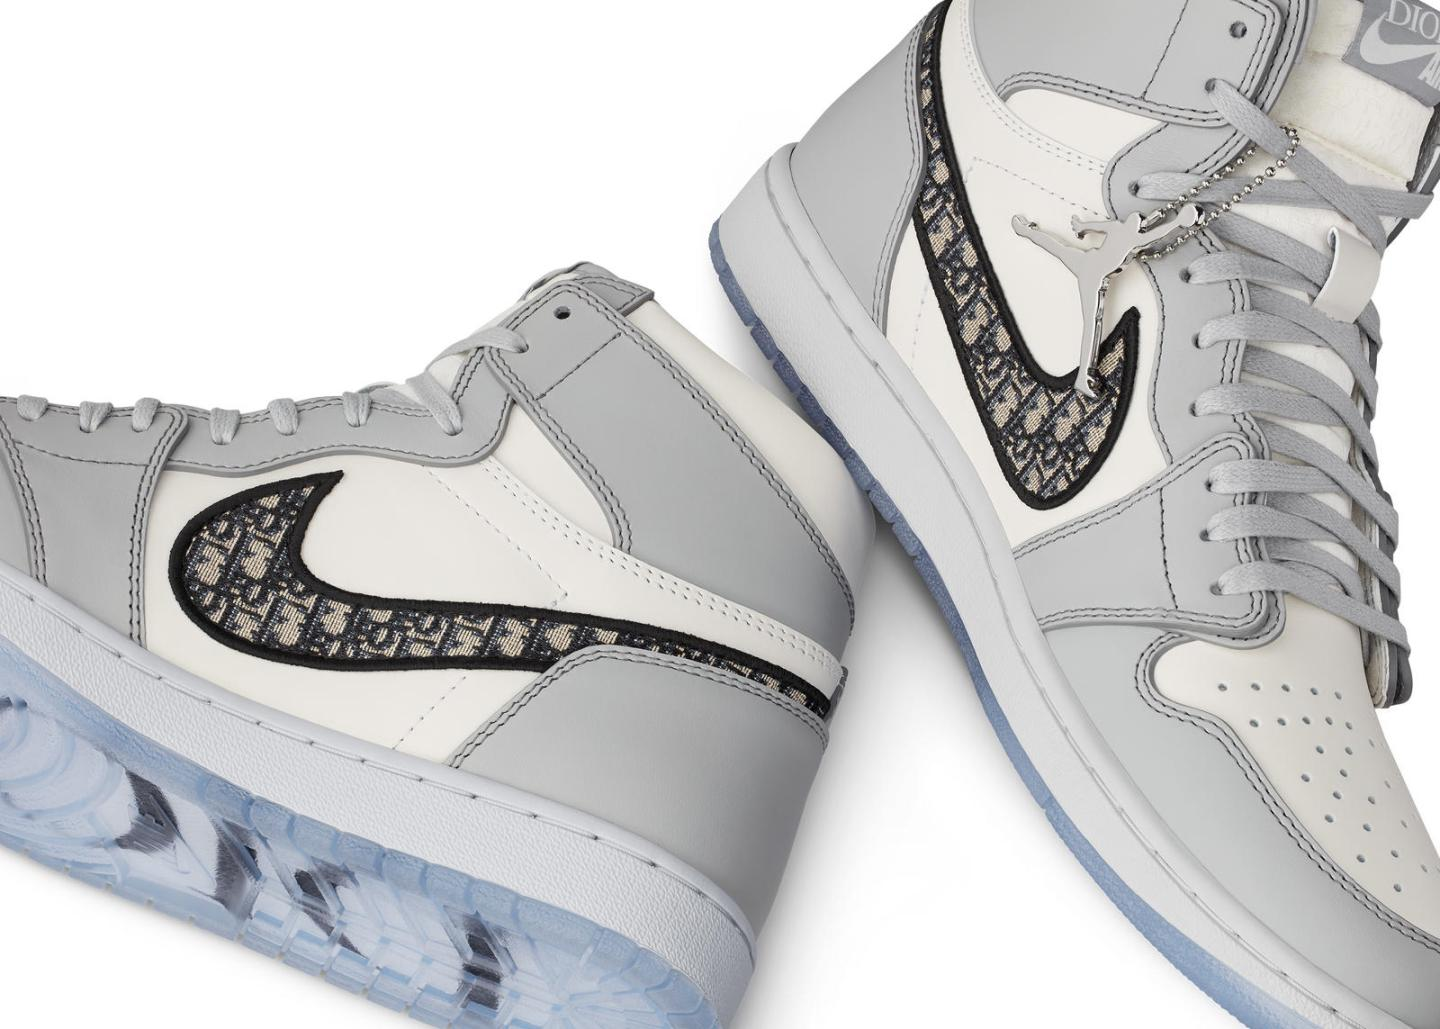 Jordan Brand and Dior Announce New Collaboration